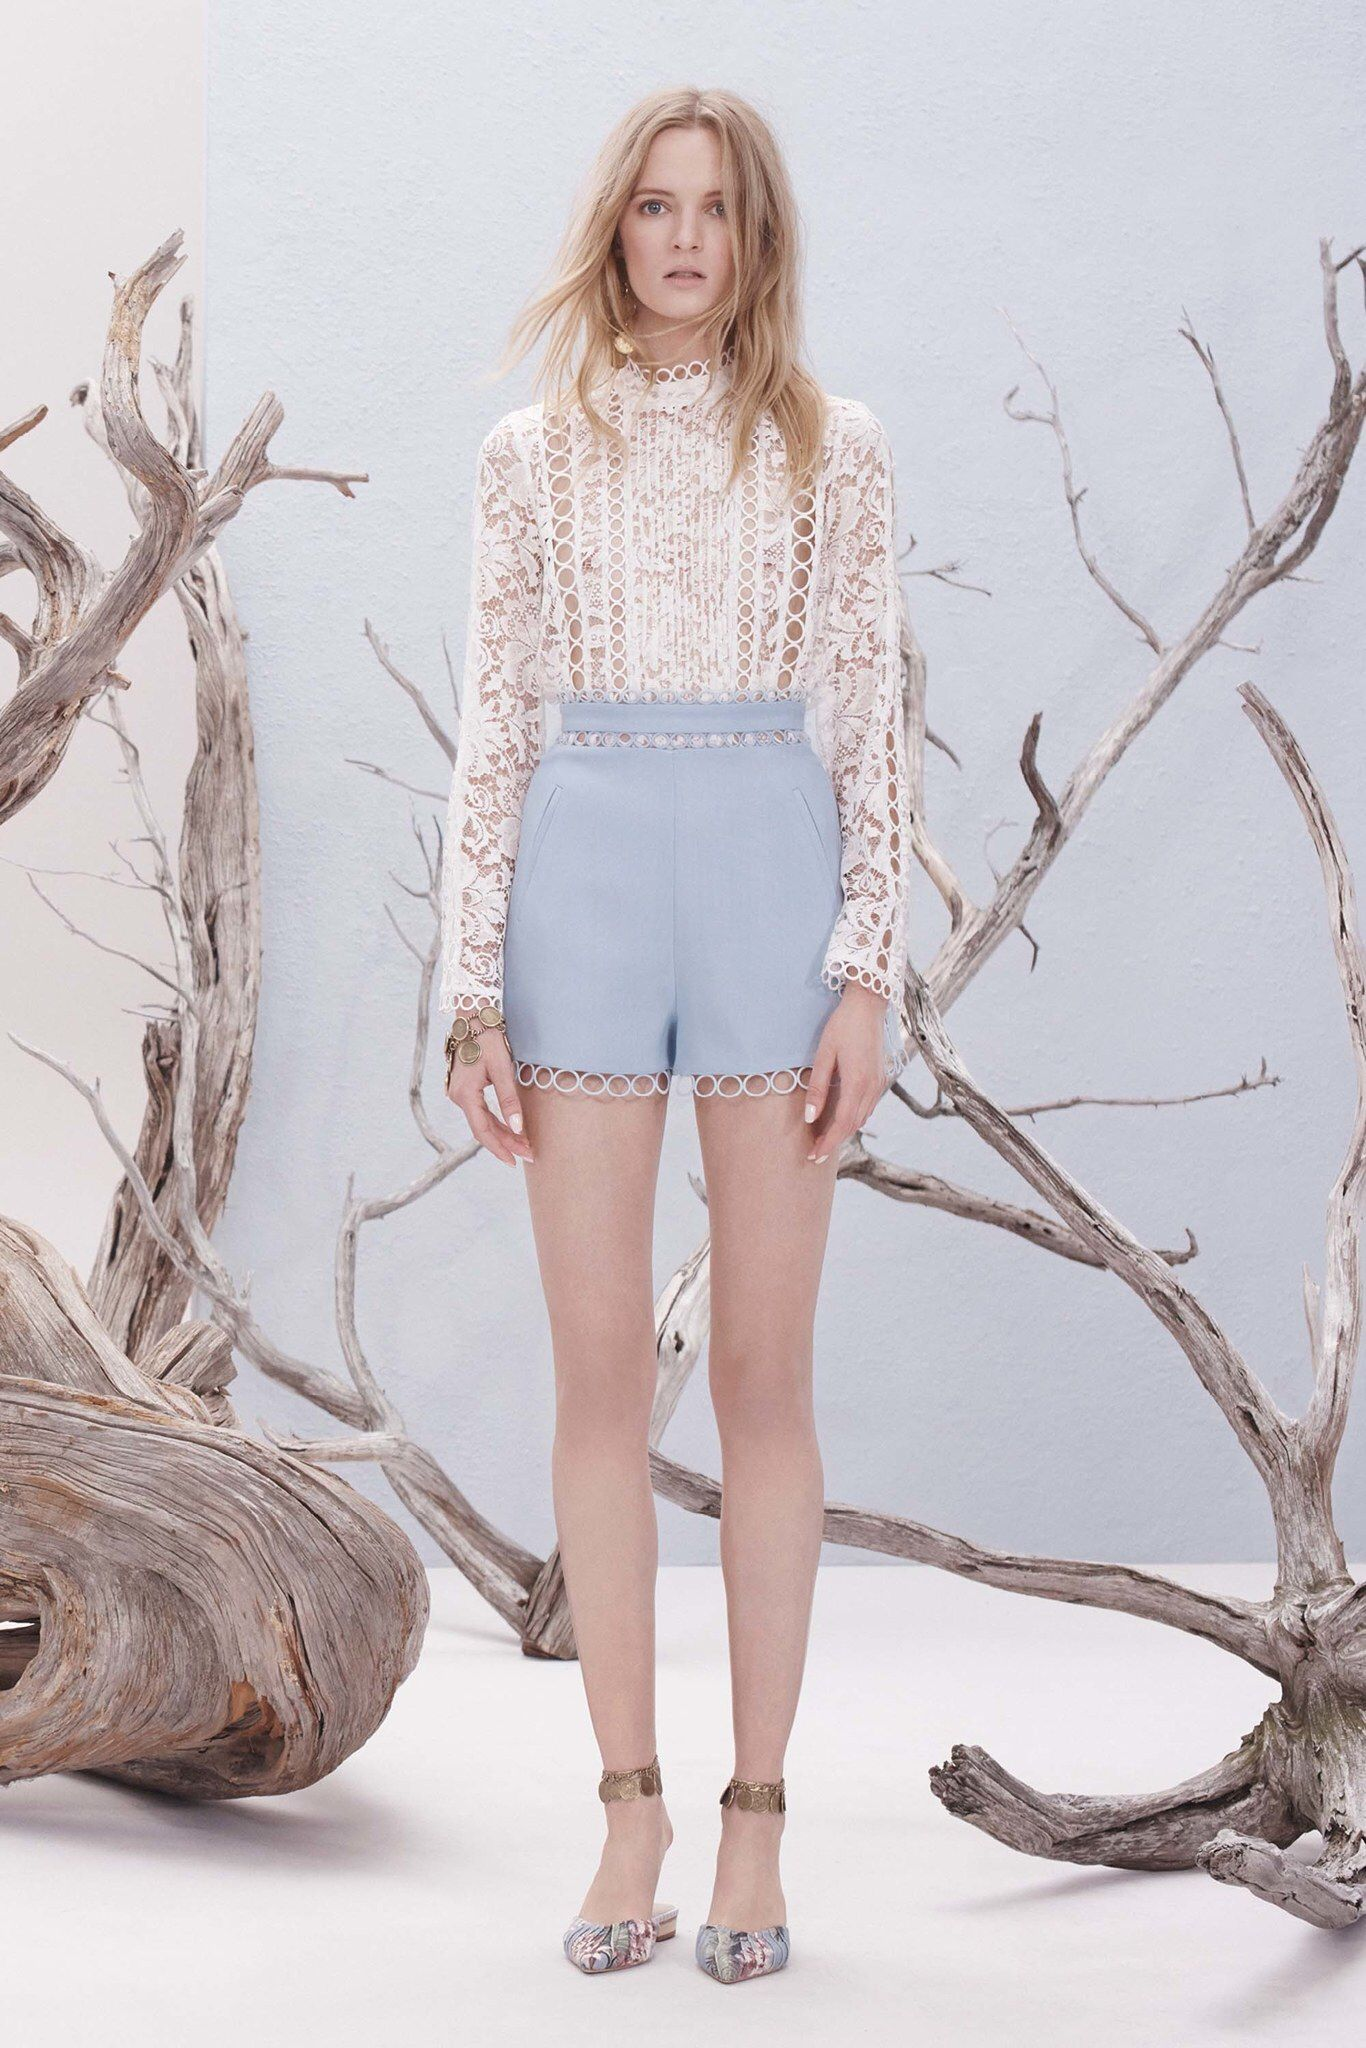 Zimmermann resort fashion show resorts dress games and shorts